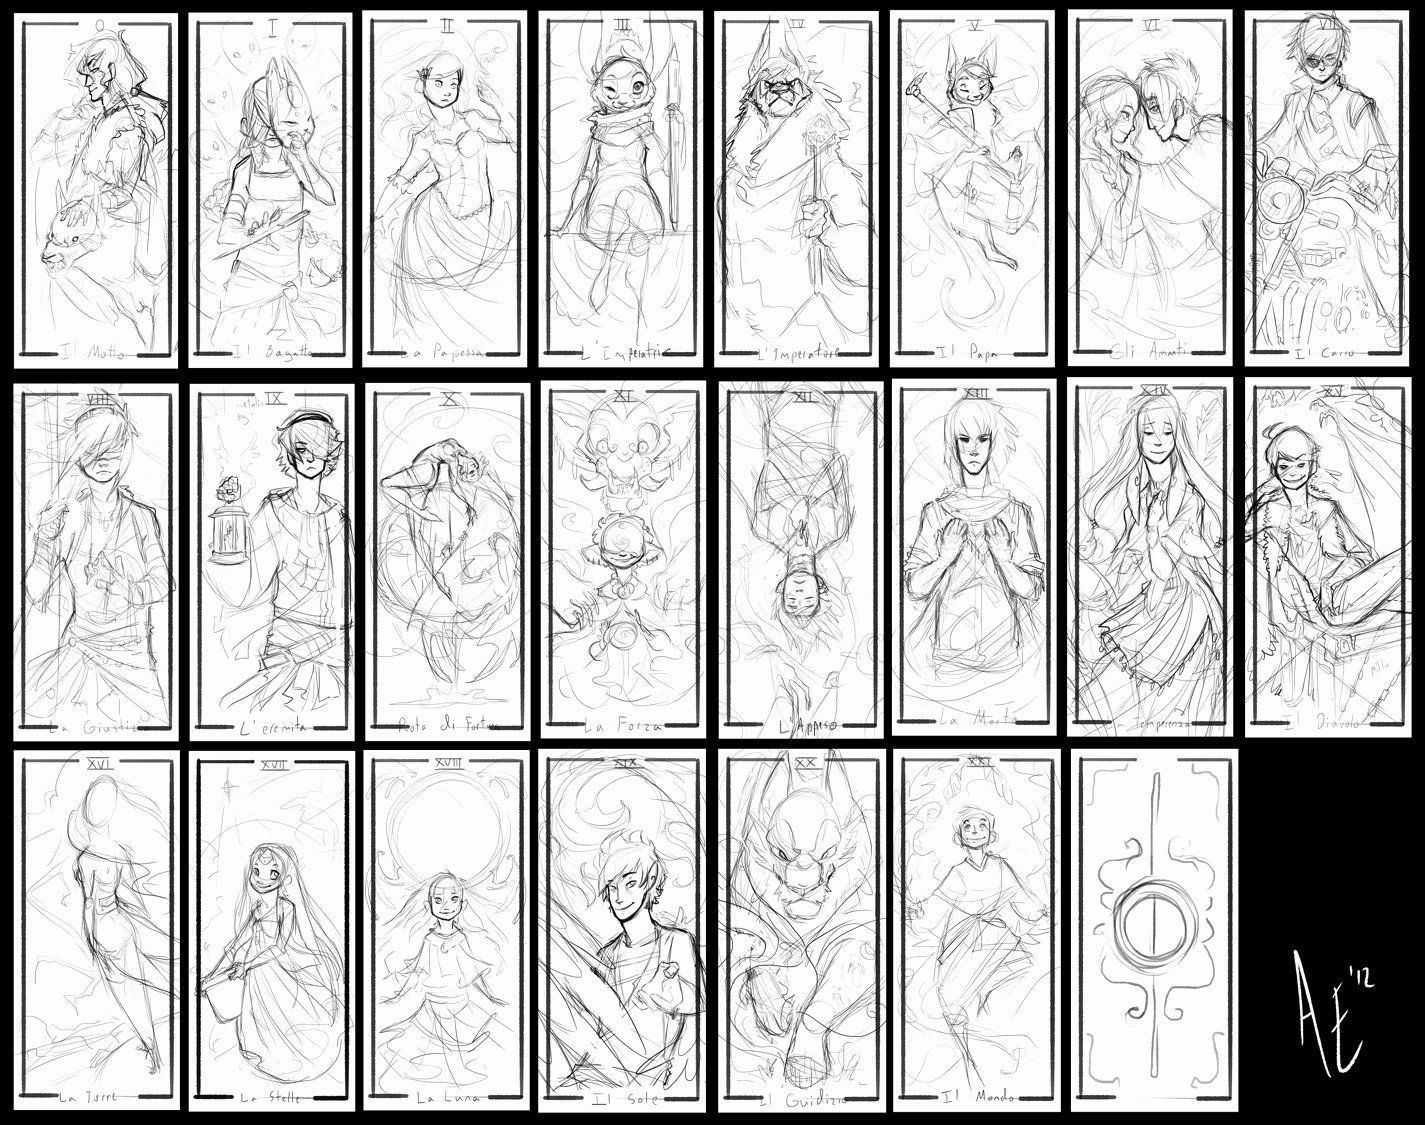 Deck Of Cards Template Luxury Turtle Tarot Rough Sketches By Turtle Arts On Deviantart Playing Cards Design Tarot Tarot Cards